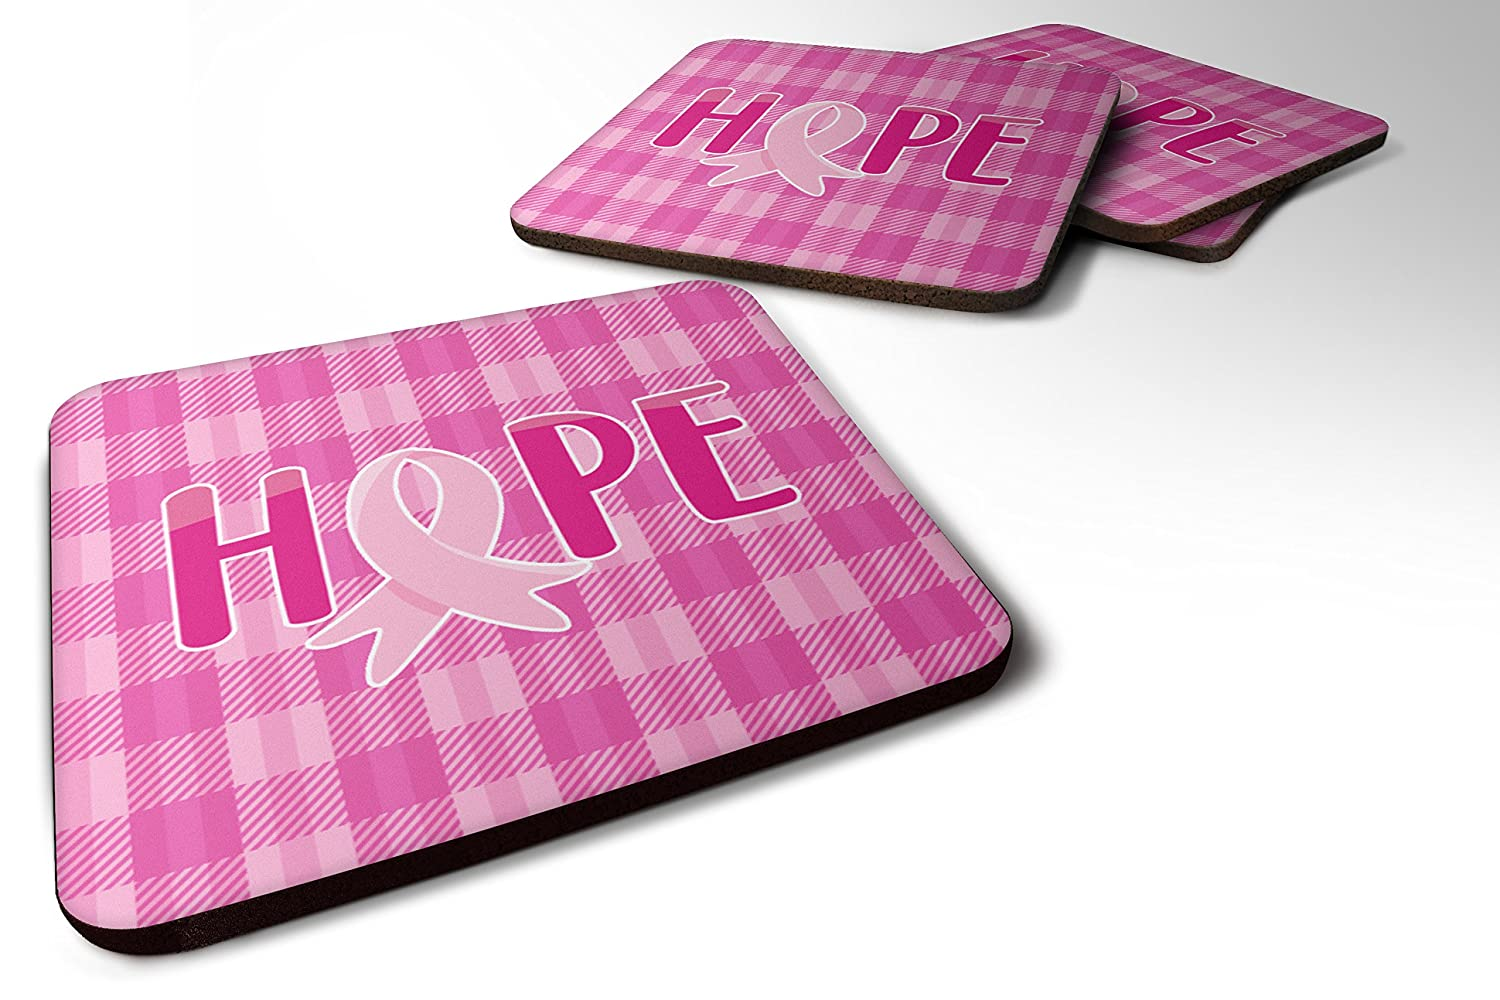 Caroline 's Treasures bb6981fcのセット4 Breast Cancer AwarenessリボンHope Foamコースターのセット4、3 1 / 2 x 3 1 / 2、マルチカラー   B06ZYCFYF8